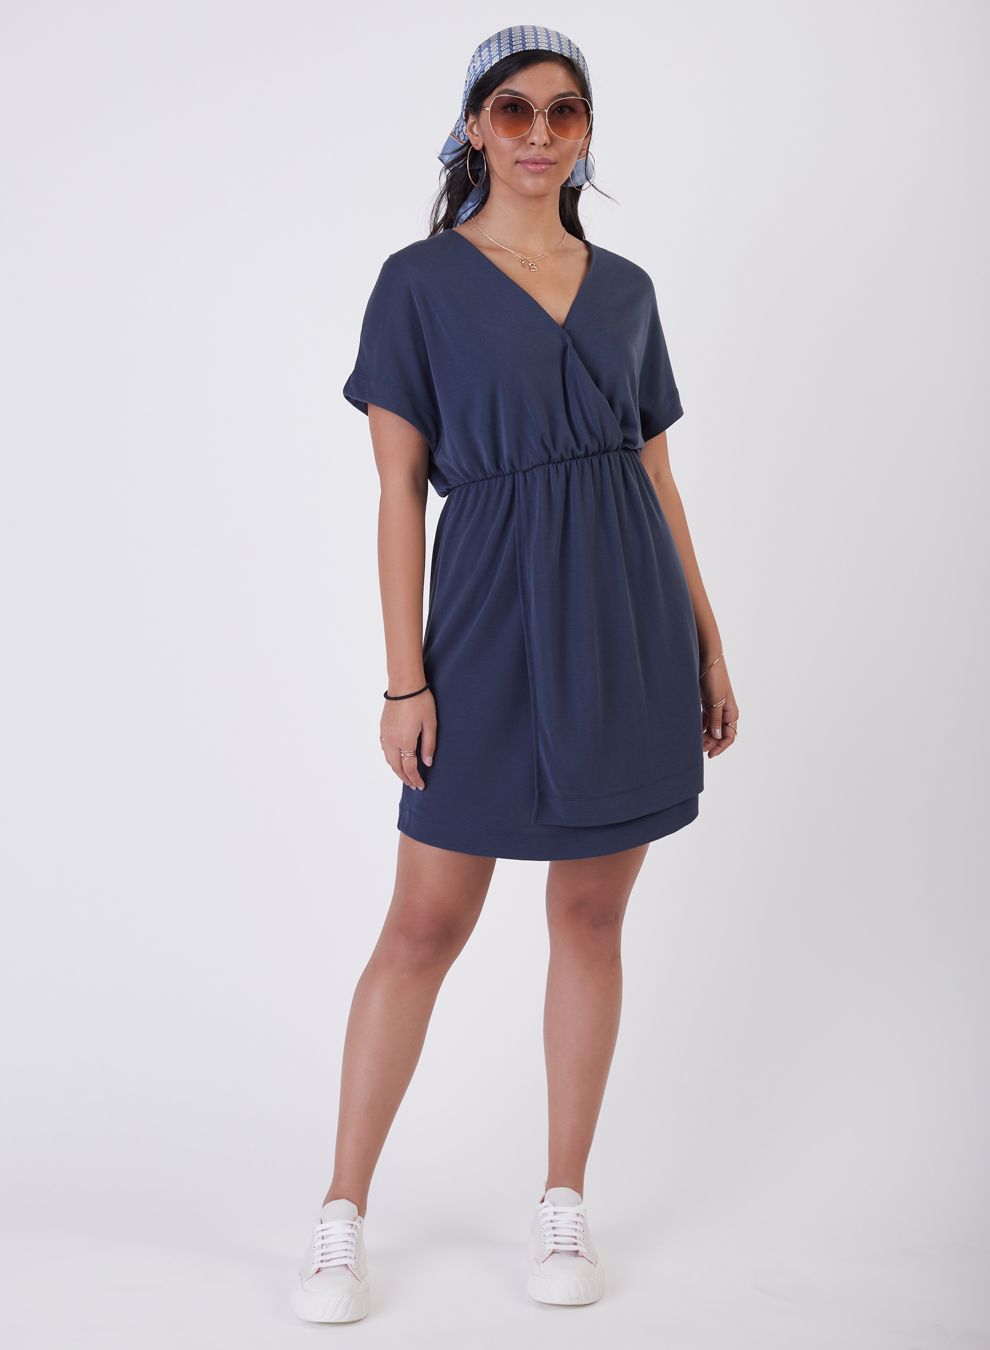 Black Tape Short Sleeve Dress - Style 1722021T